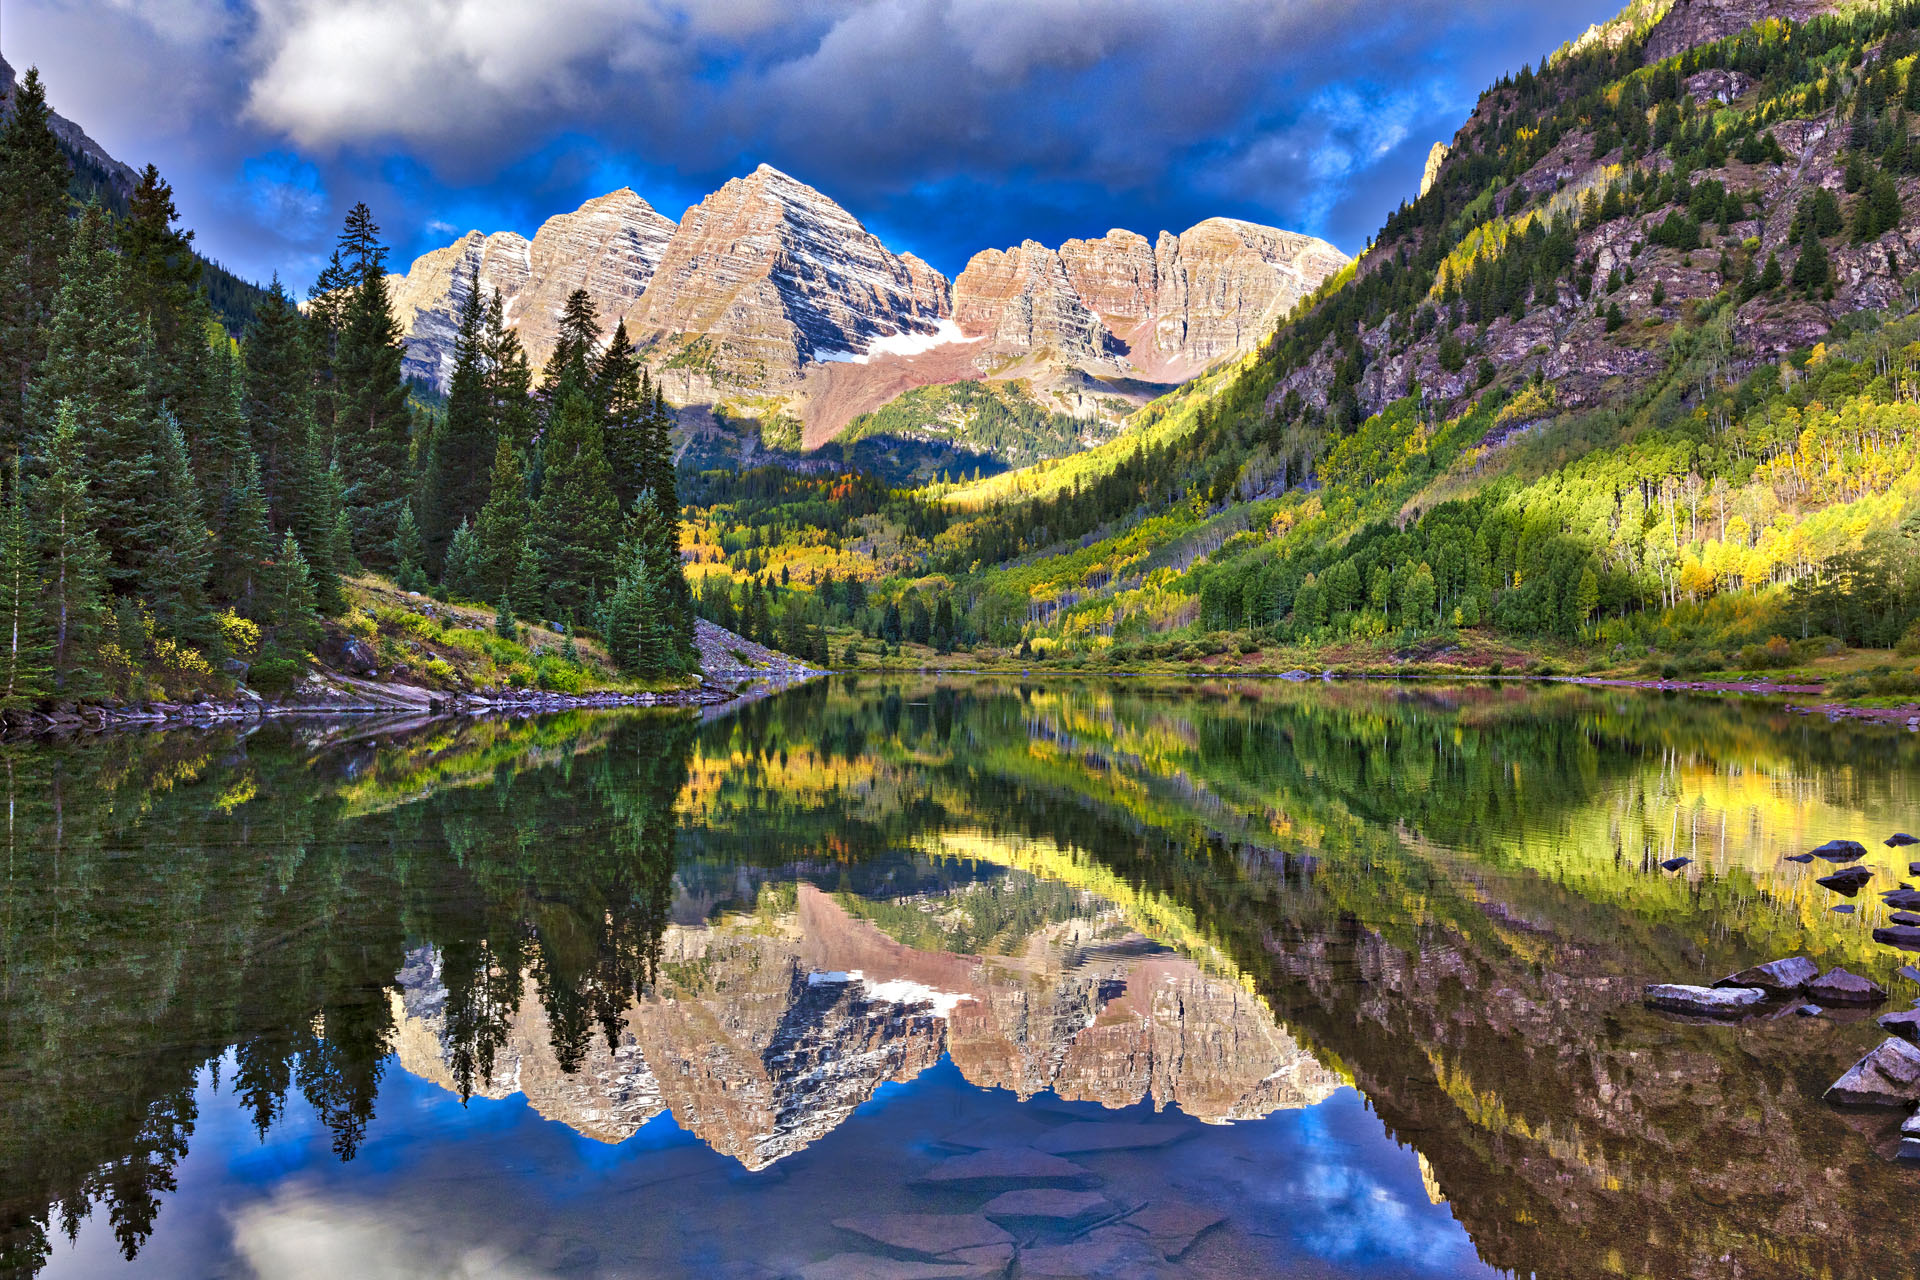 Lake reflection of Autumn colors at Maroon Bells outside Aspen Colorado.